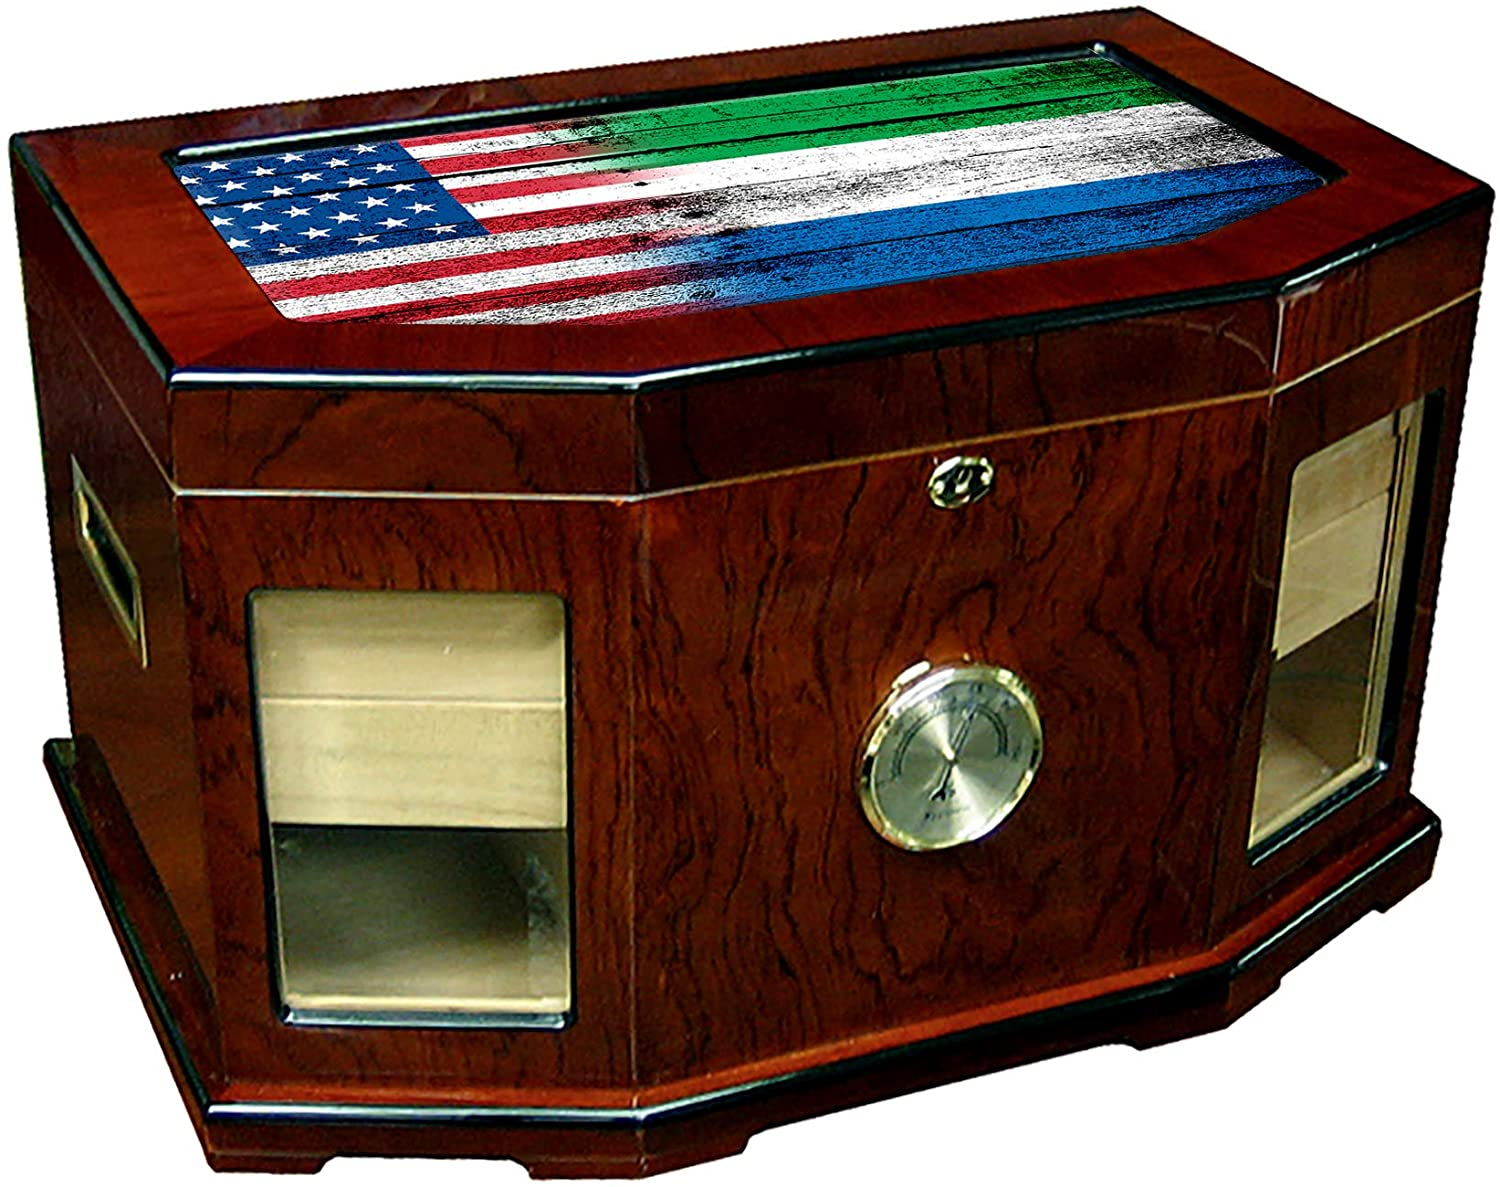 Large Premium Desktop Humidor - Glass Top - Flag of Sierra Leone (Leonean) - Wood with USA Flag - 300 Cigar Capacity - Cedar Lined with Two humidifiers & Large Front Mounted Hygrometer.